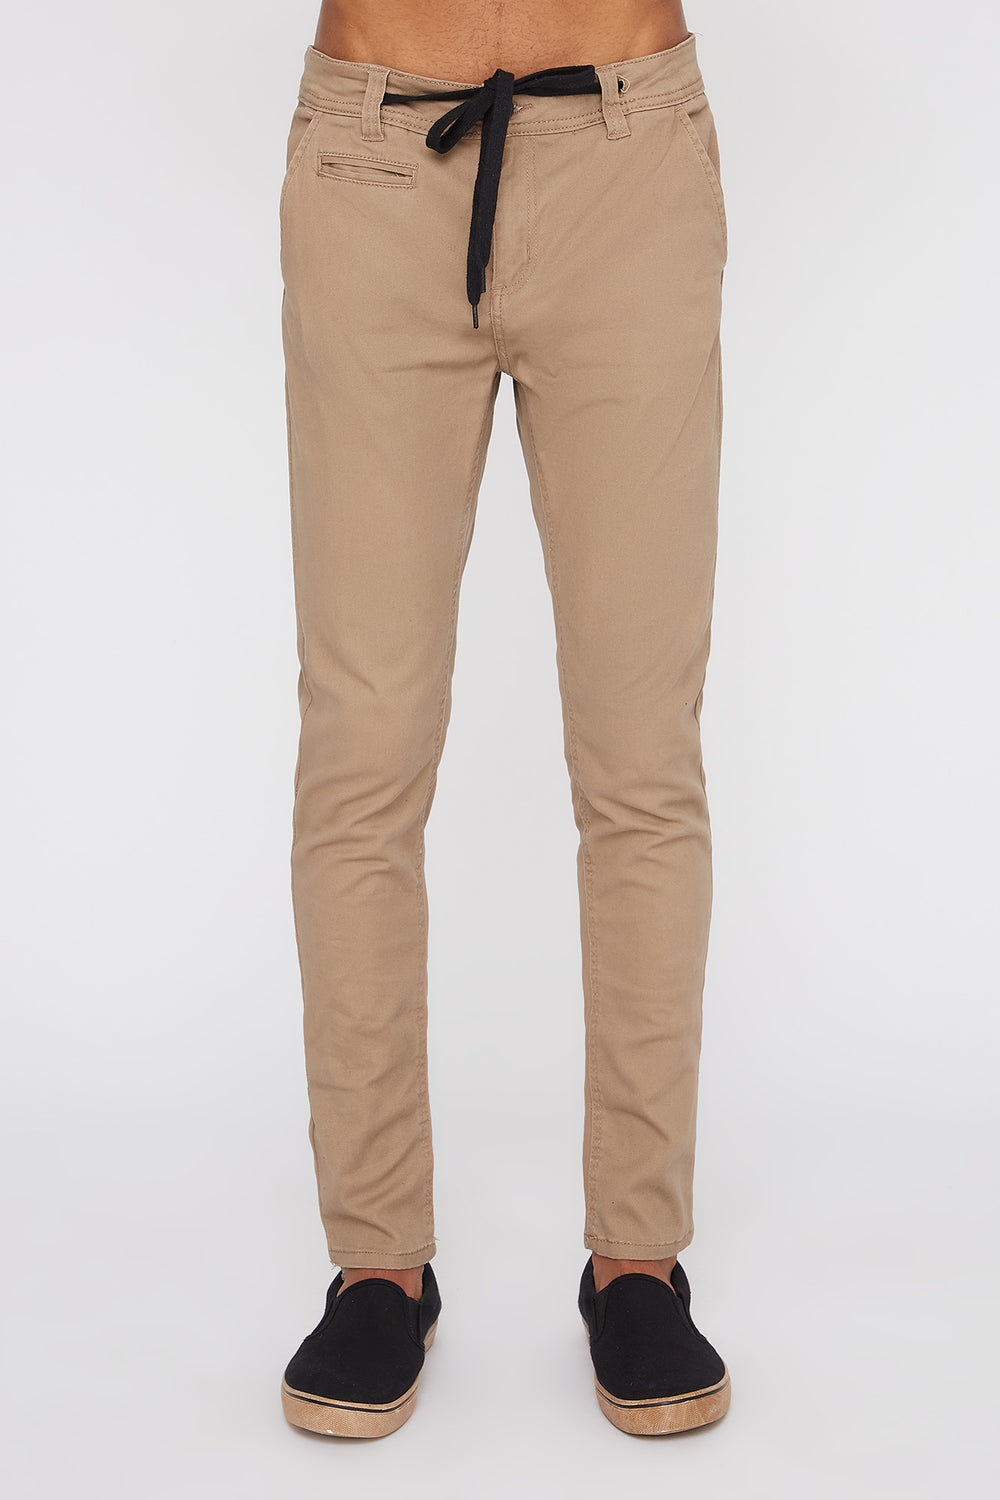 Chinos West49 Homme Sable